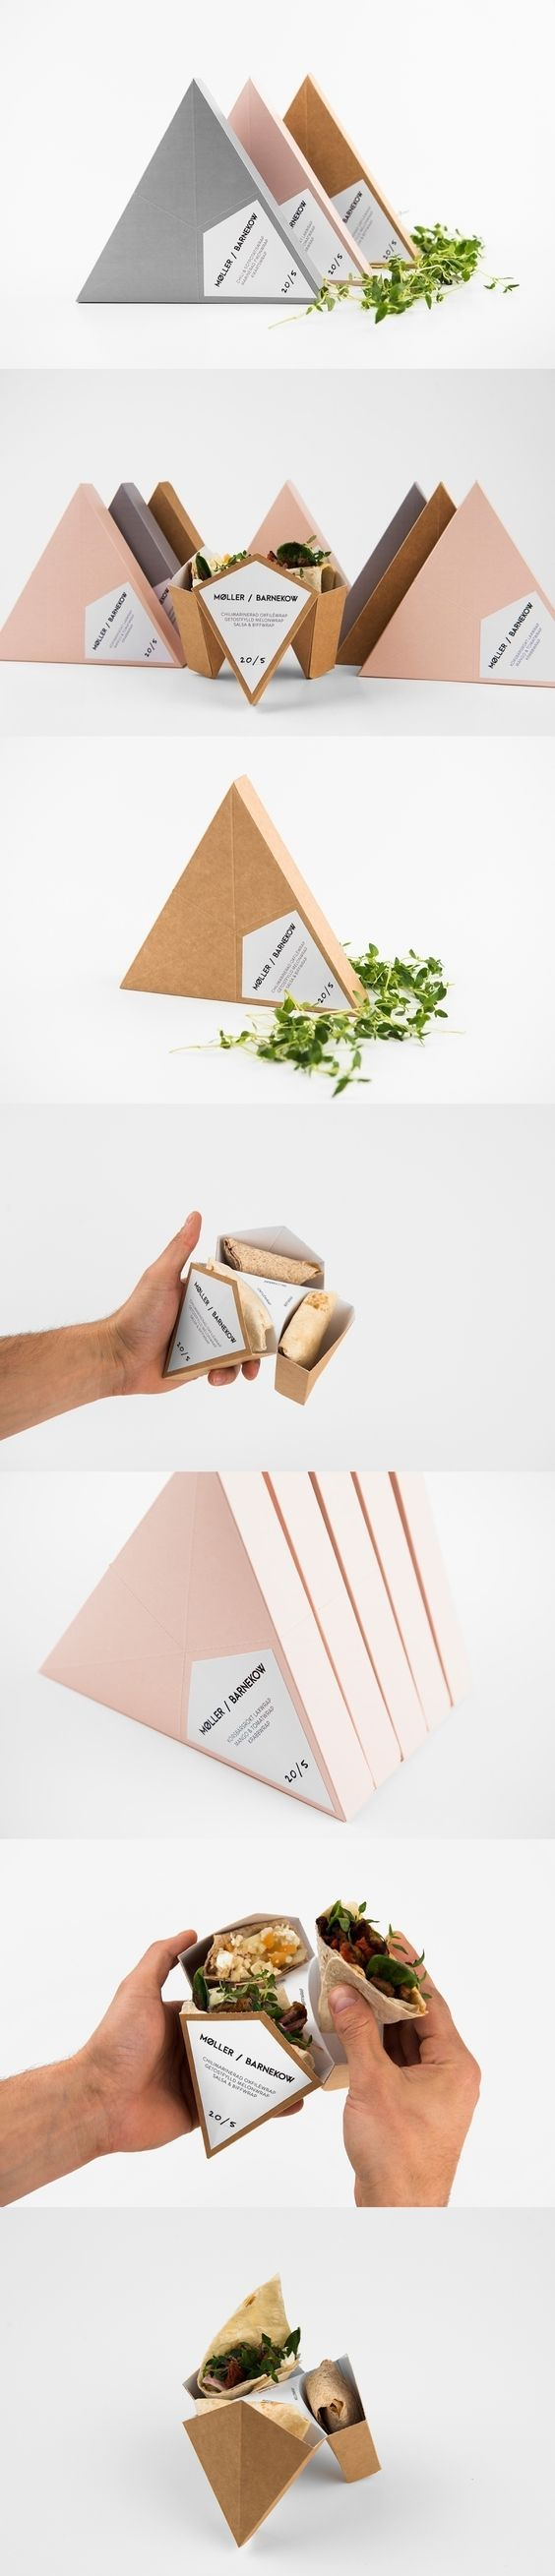 ber ideen zu sandwich verpackung auf pinterest. Black Bedroom Furniture Sets. Home Design Ideas